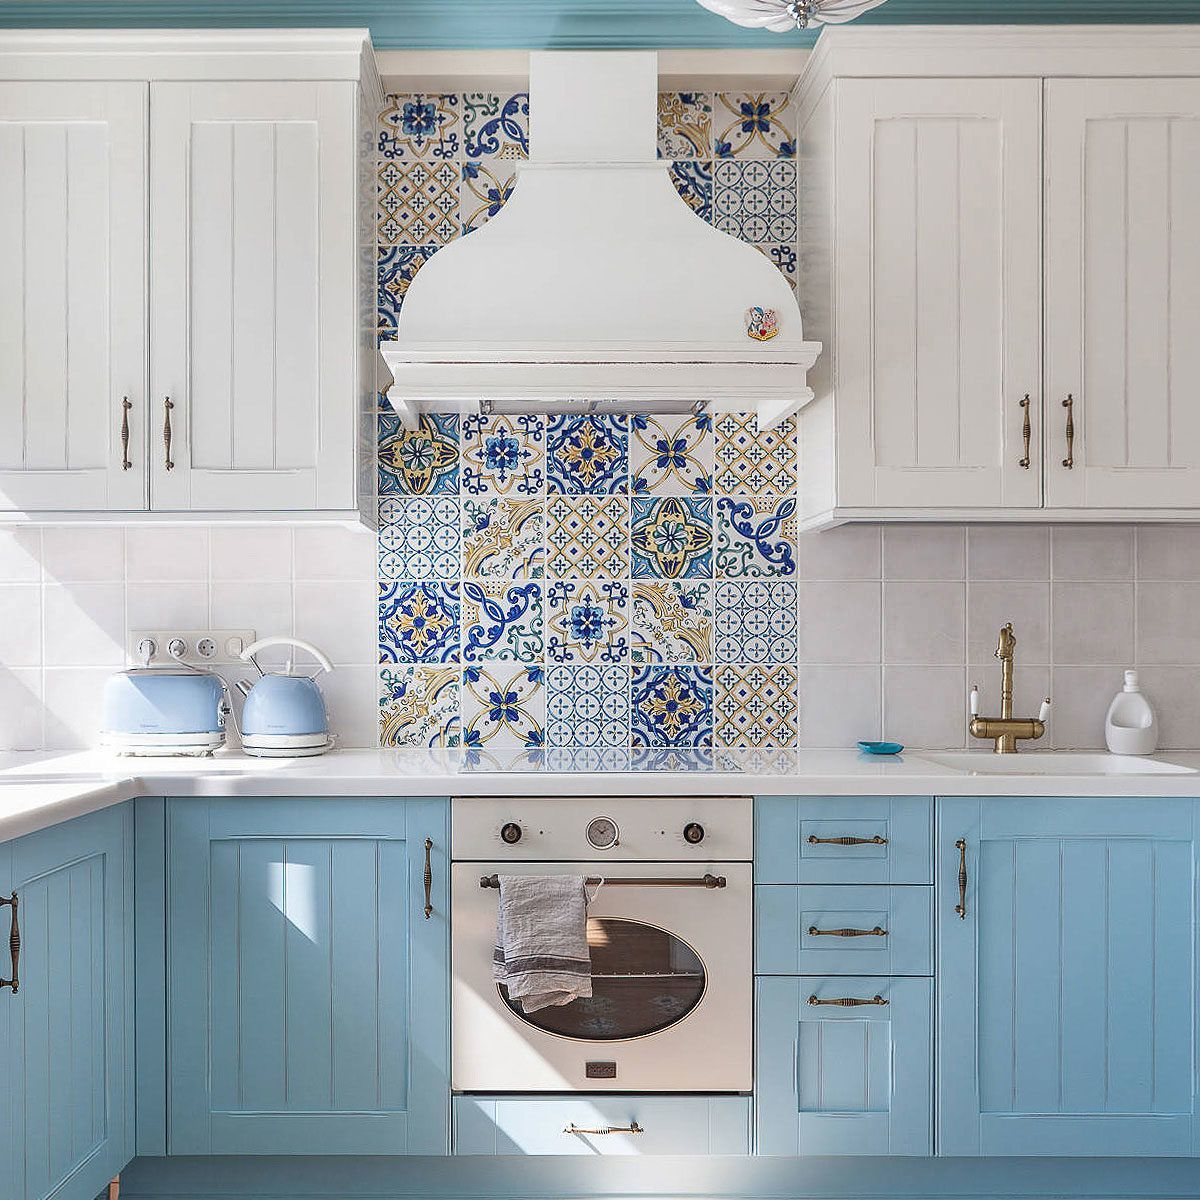 - Pin On Farmhouse Kitchen Backsplash